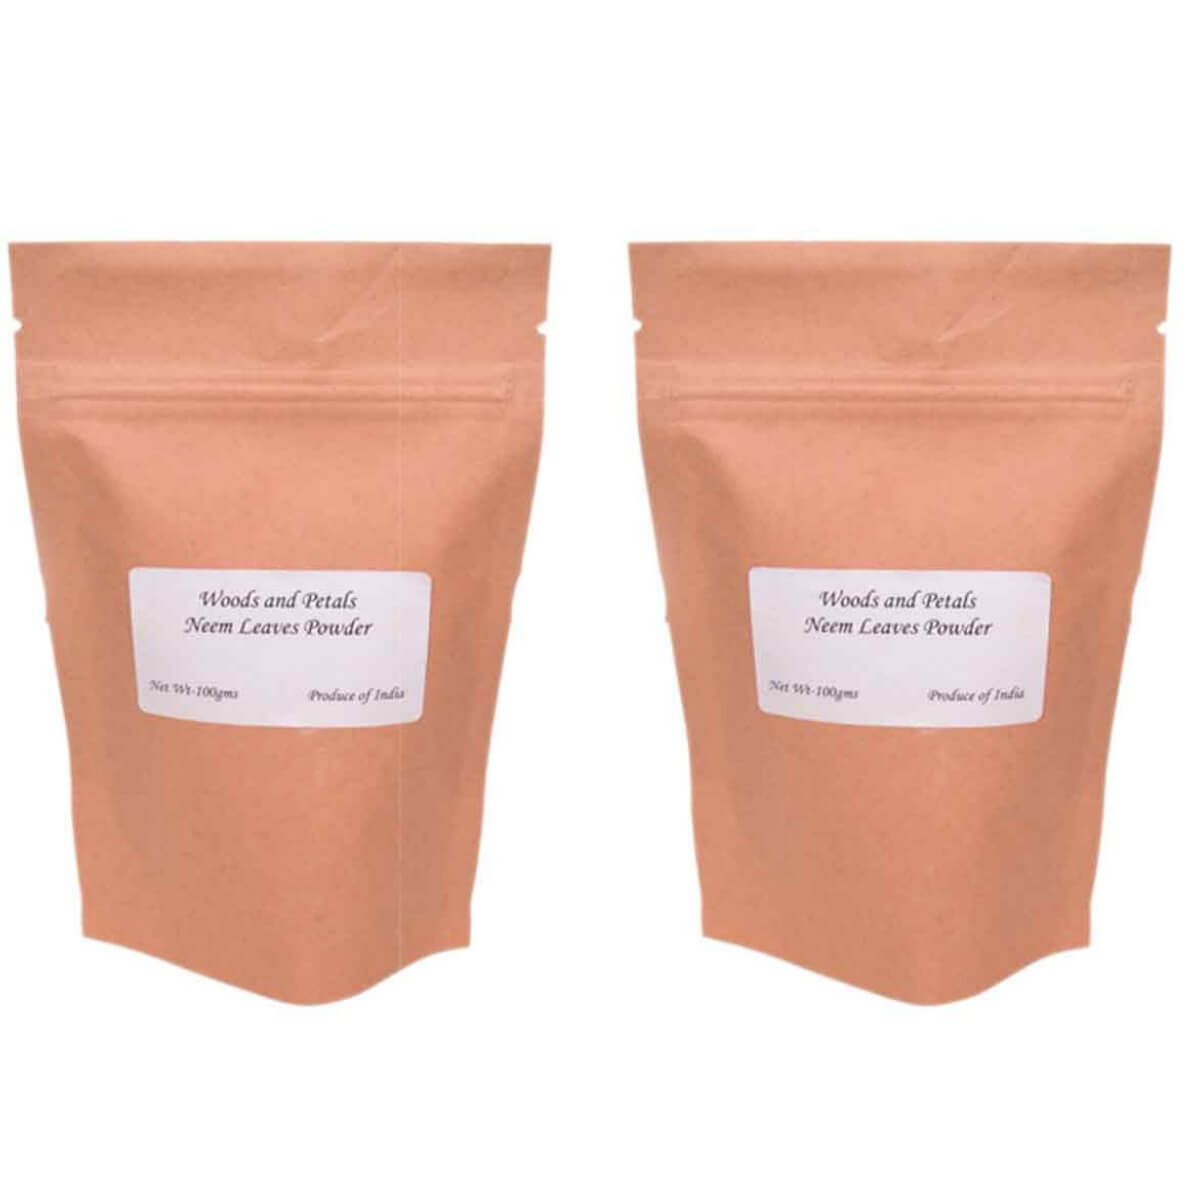 Buy Neem Leaves Powder for Skin & Hair products online in